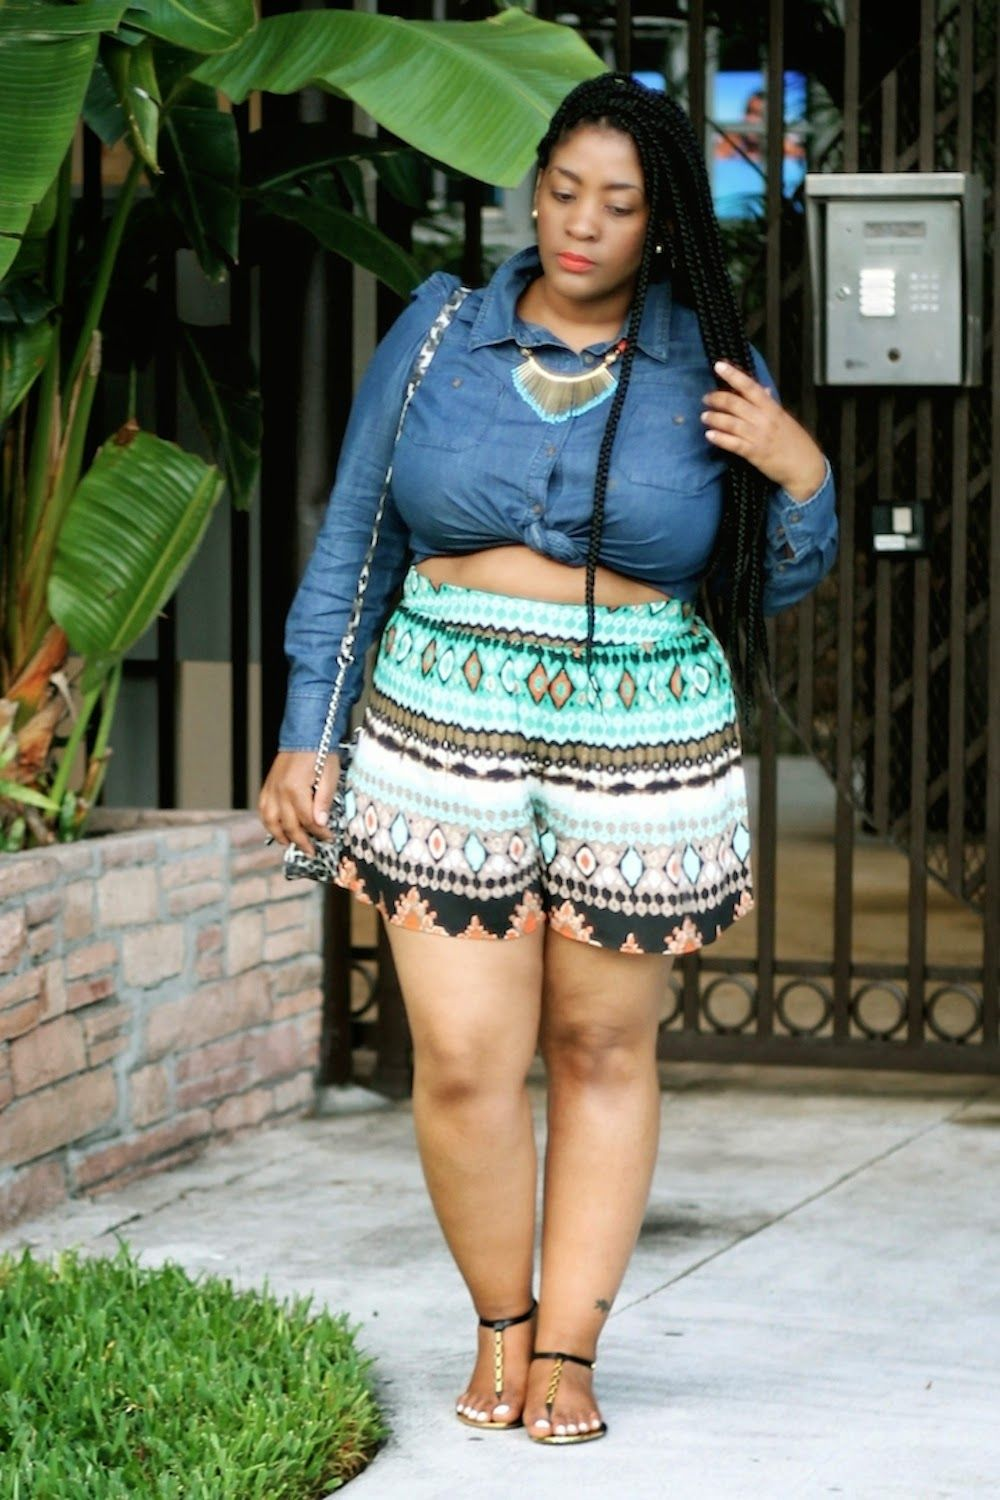 d8de5c5bf1 Miami Style  Culottes and Makeshift Crop Tops ~ Style Chic 360 Plus Size  Summer Outfit